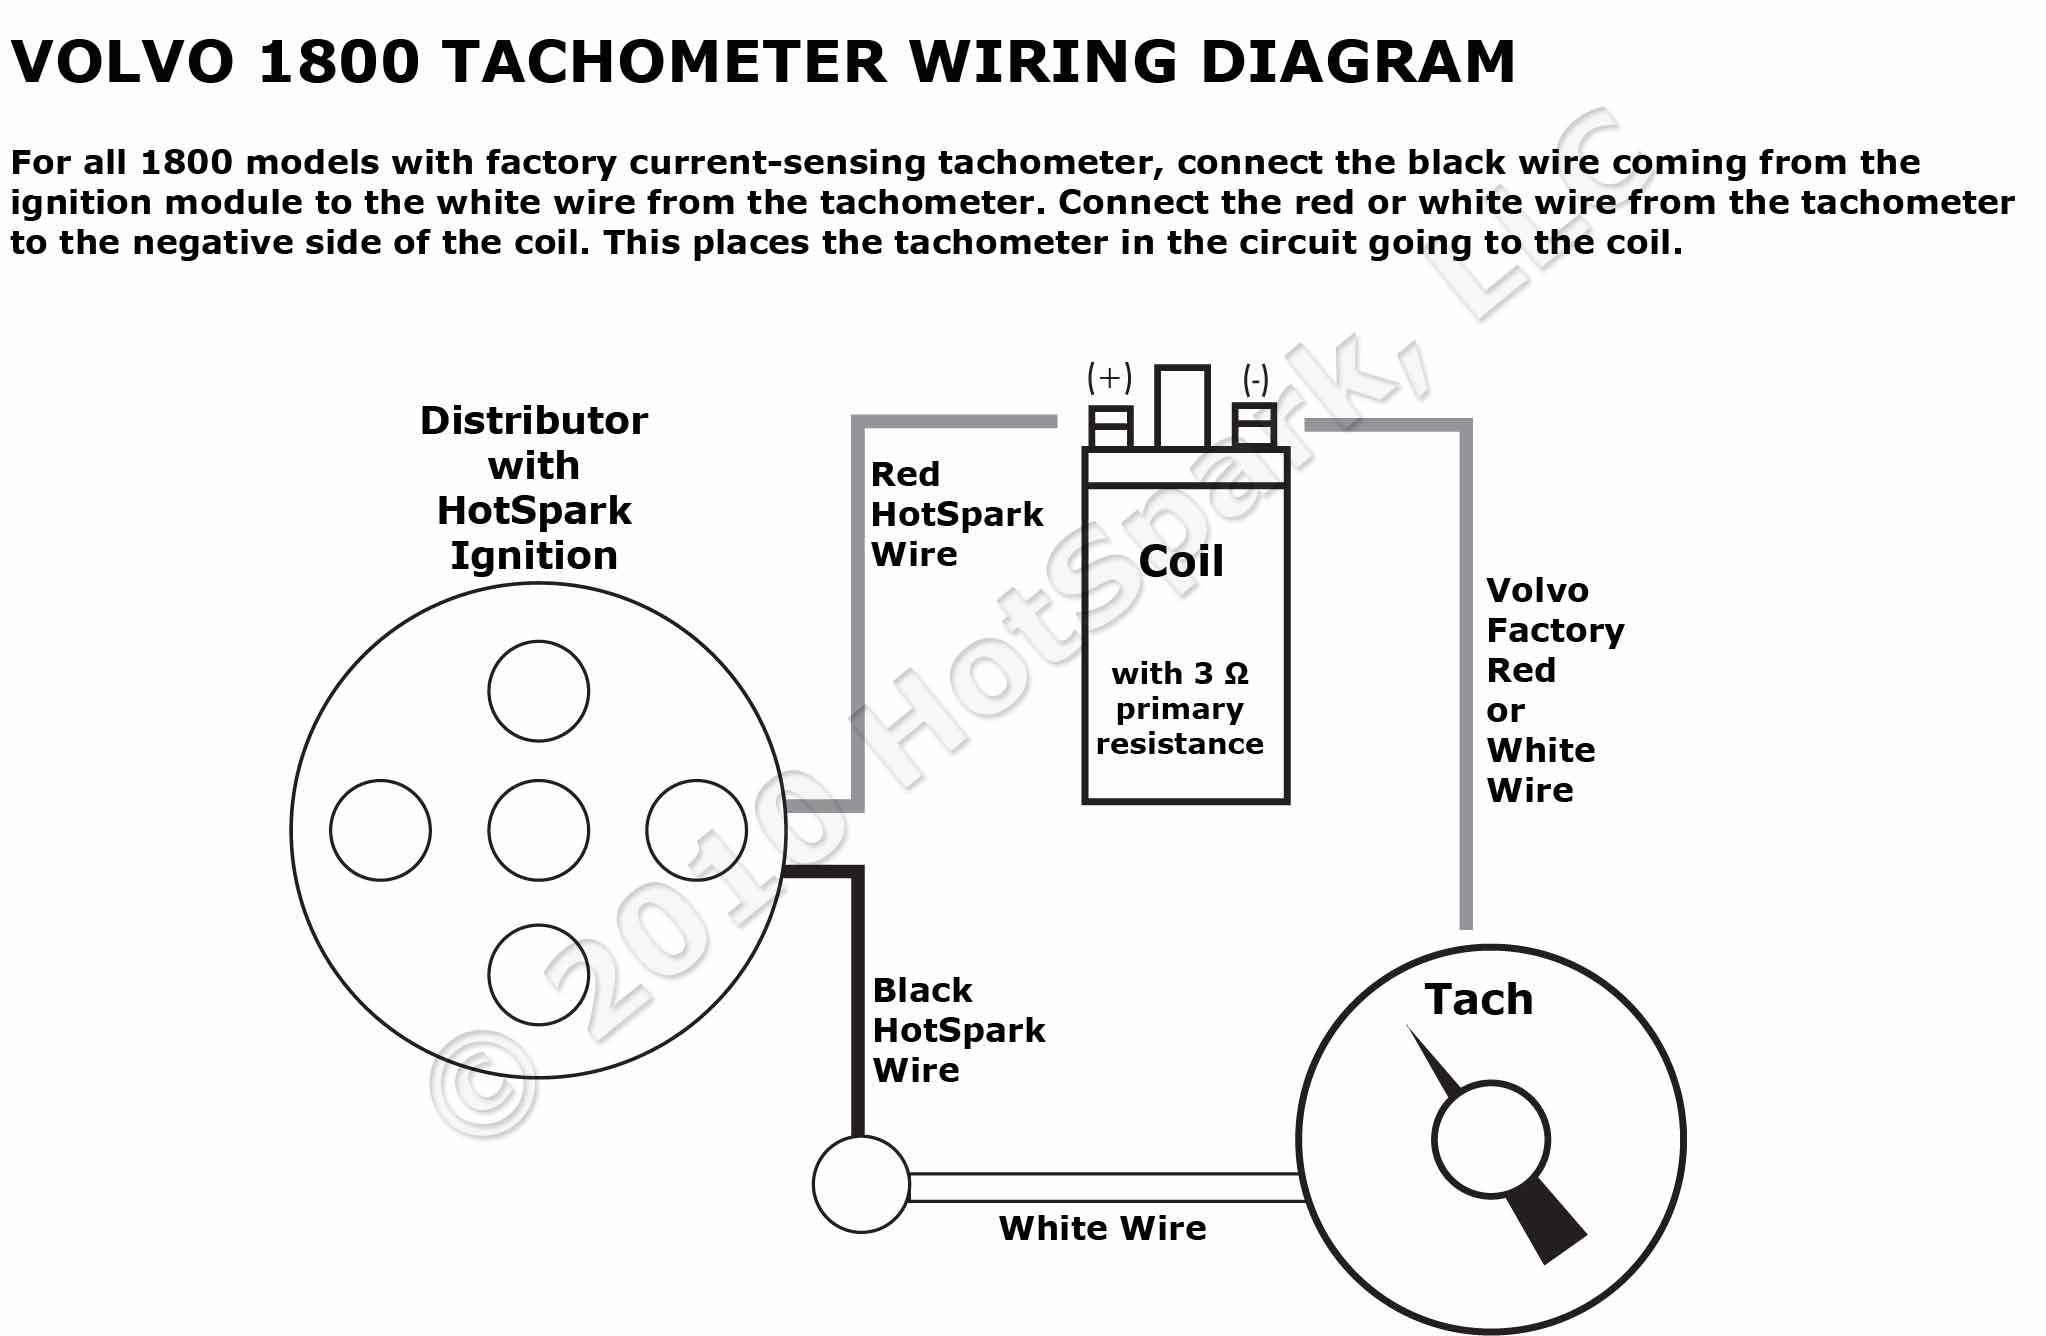 Volvo 1800 Tachometer and Hot Spark Wiring Diagram tach wiring diagram autometer tach wiring diagram \u2022 wiring motorcycle rpm wiring diagram at panicattacktreatment.co